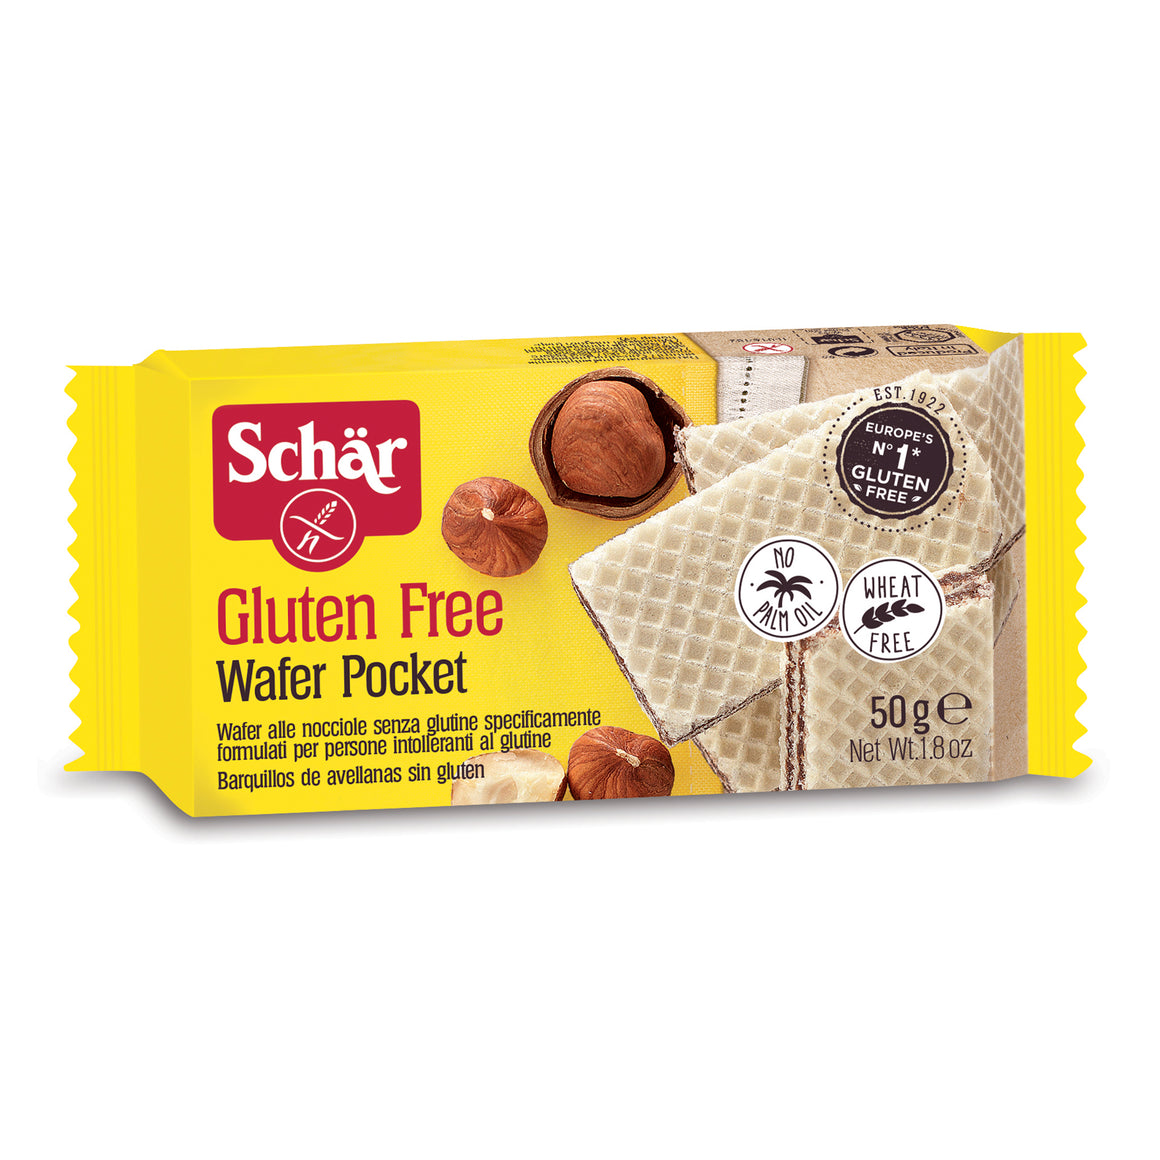 Dr. Schar Gluten Free Wafer Pocket with Hazelnut Cream Filling - 50gr